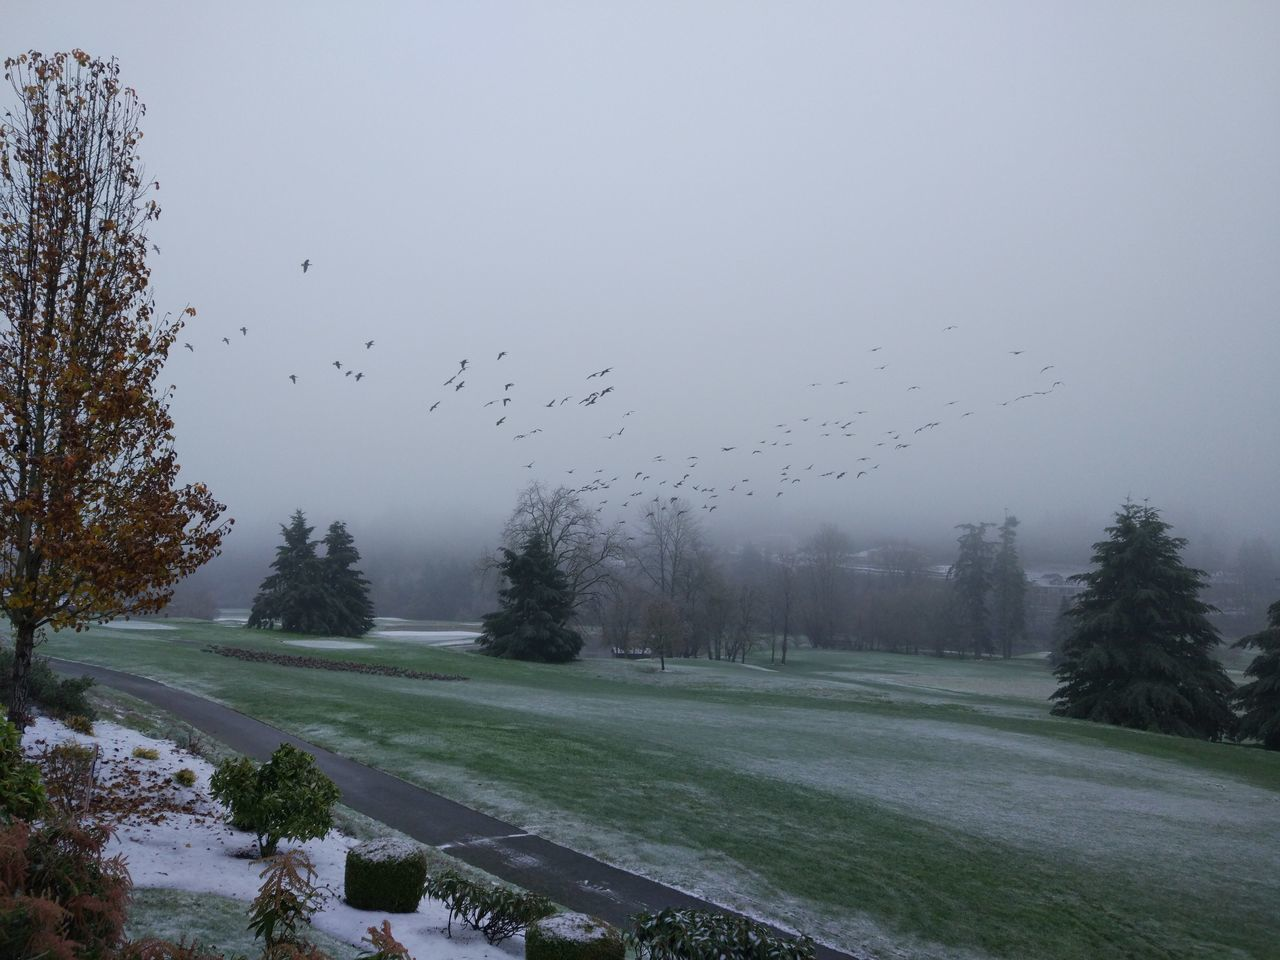 Tree Fog No People Nature Beauty In Nature Landscape Flock Of Birds Sky Outdoors Day Snow Day ❄ Snow❄⛄ Golf Club Beauty In Nature Cloud - Sky USAtrip Trees Grassfield Salem, Oregon Tree Nature Grass Gooses Family Birds Birds In Flight